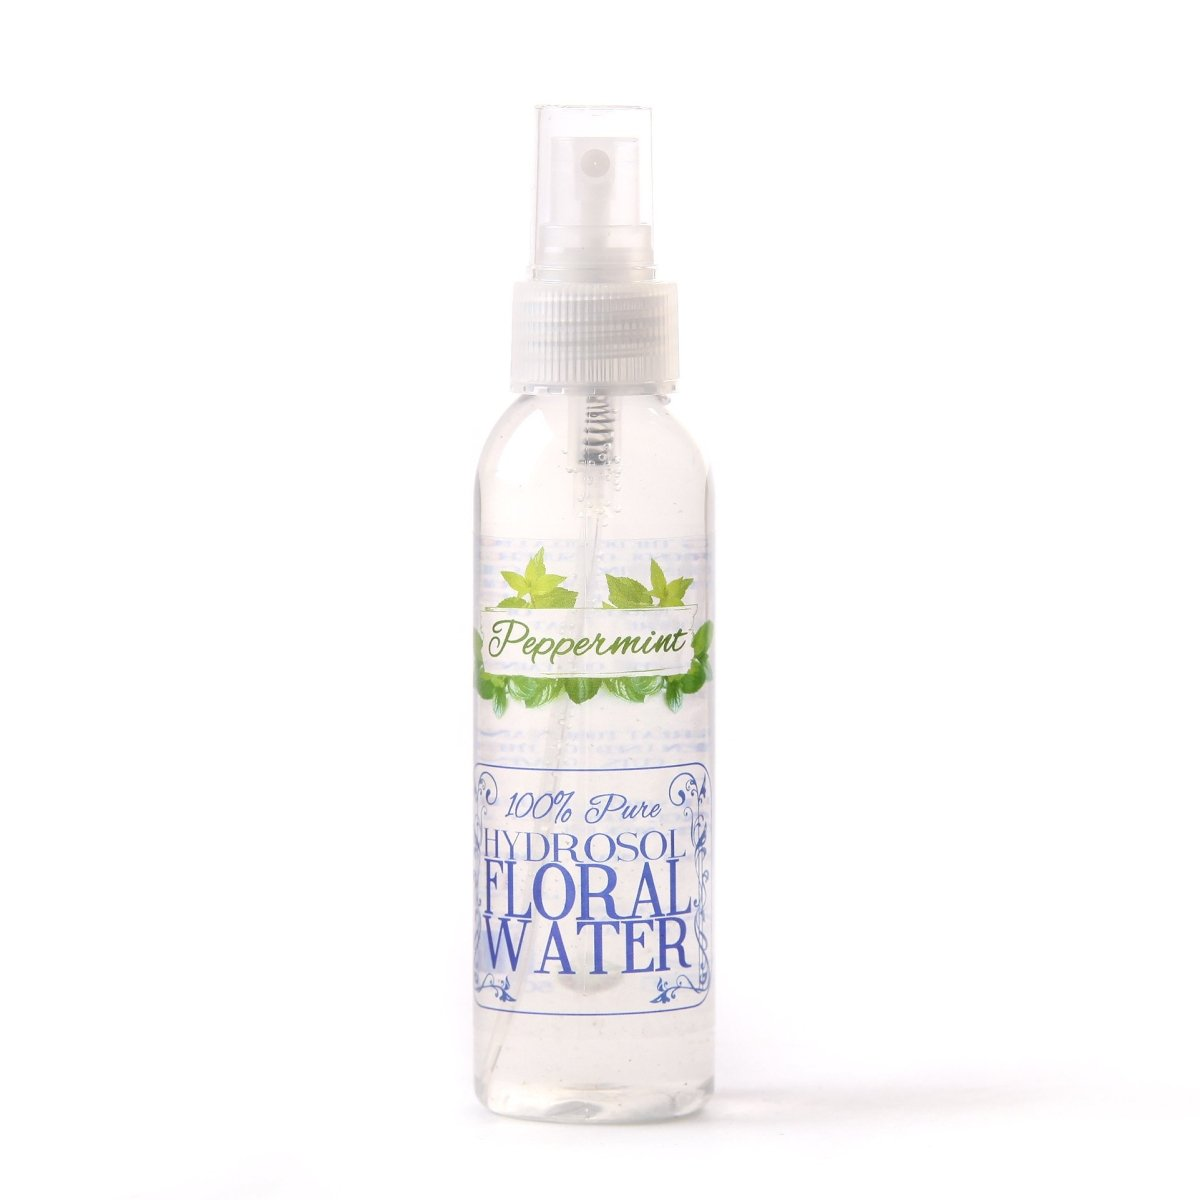 Peppermint Hydrosol Floral Water - Mystic Moments UK